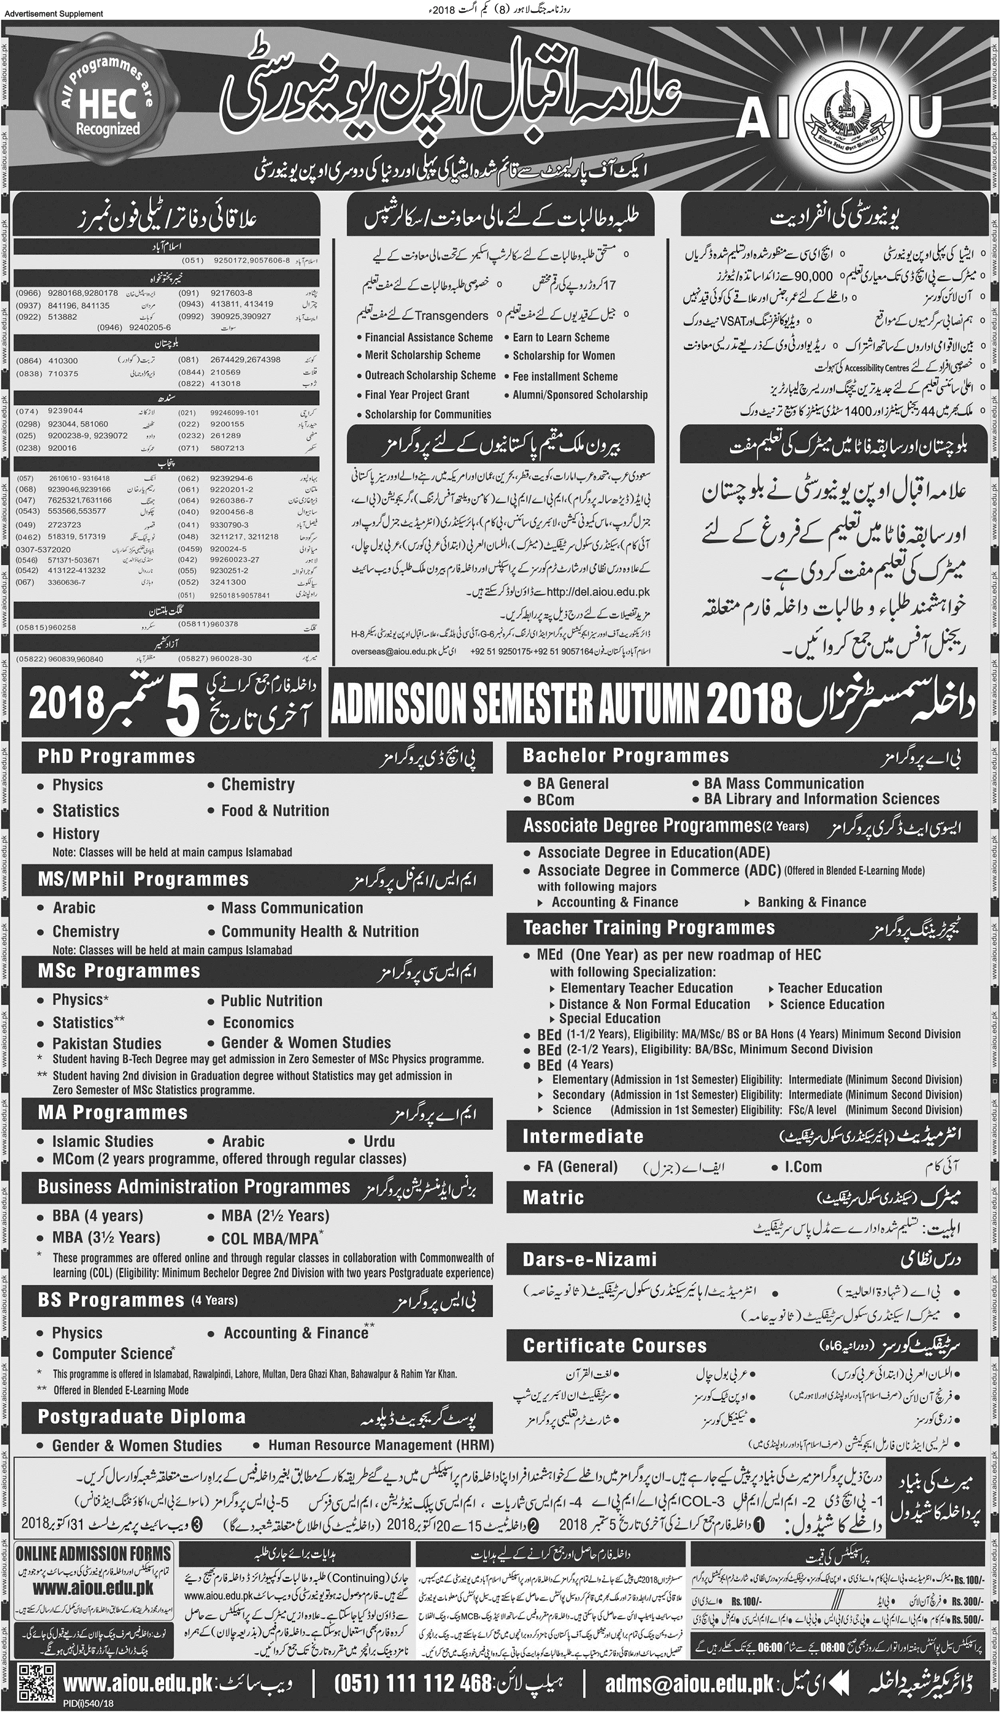 AIOU Autumn Admission 2018 Form, Advertisement, Last Date